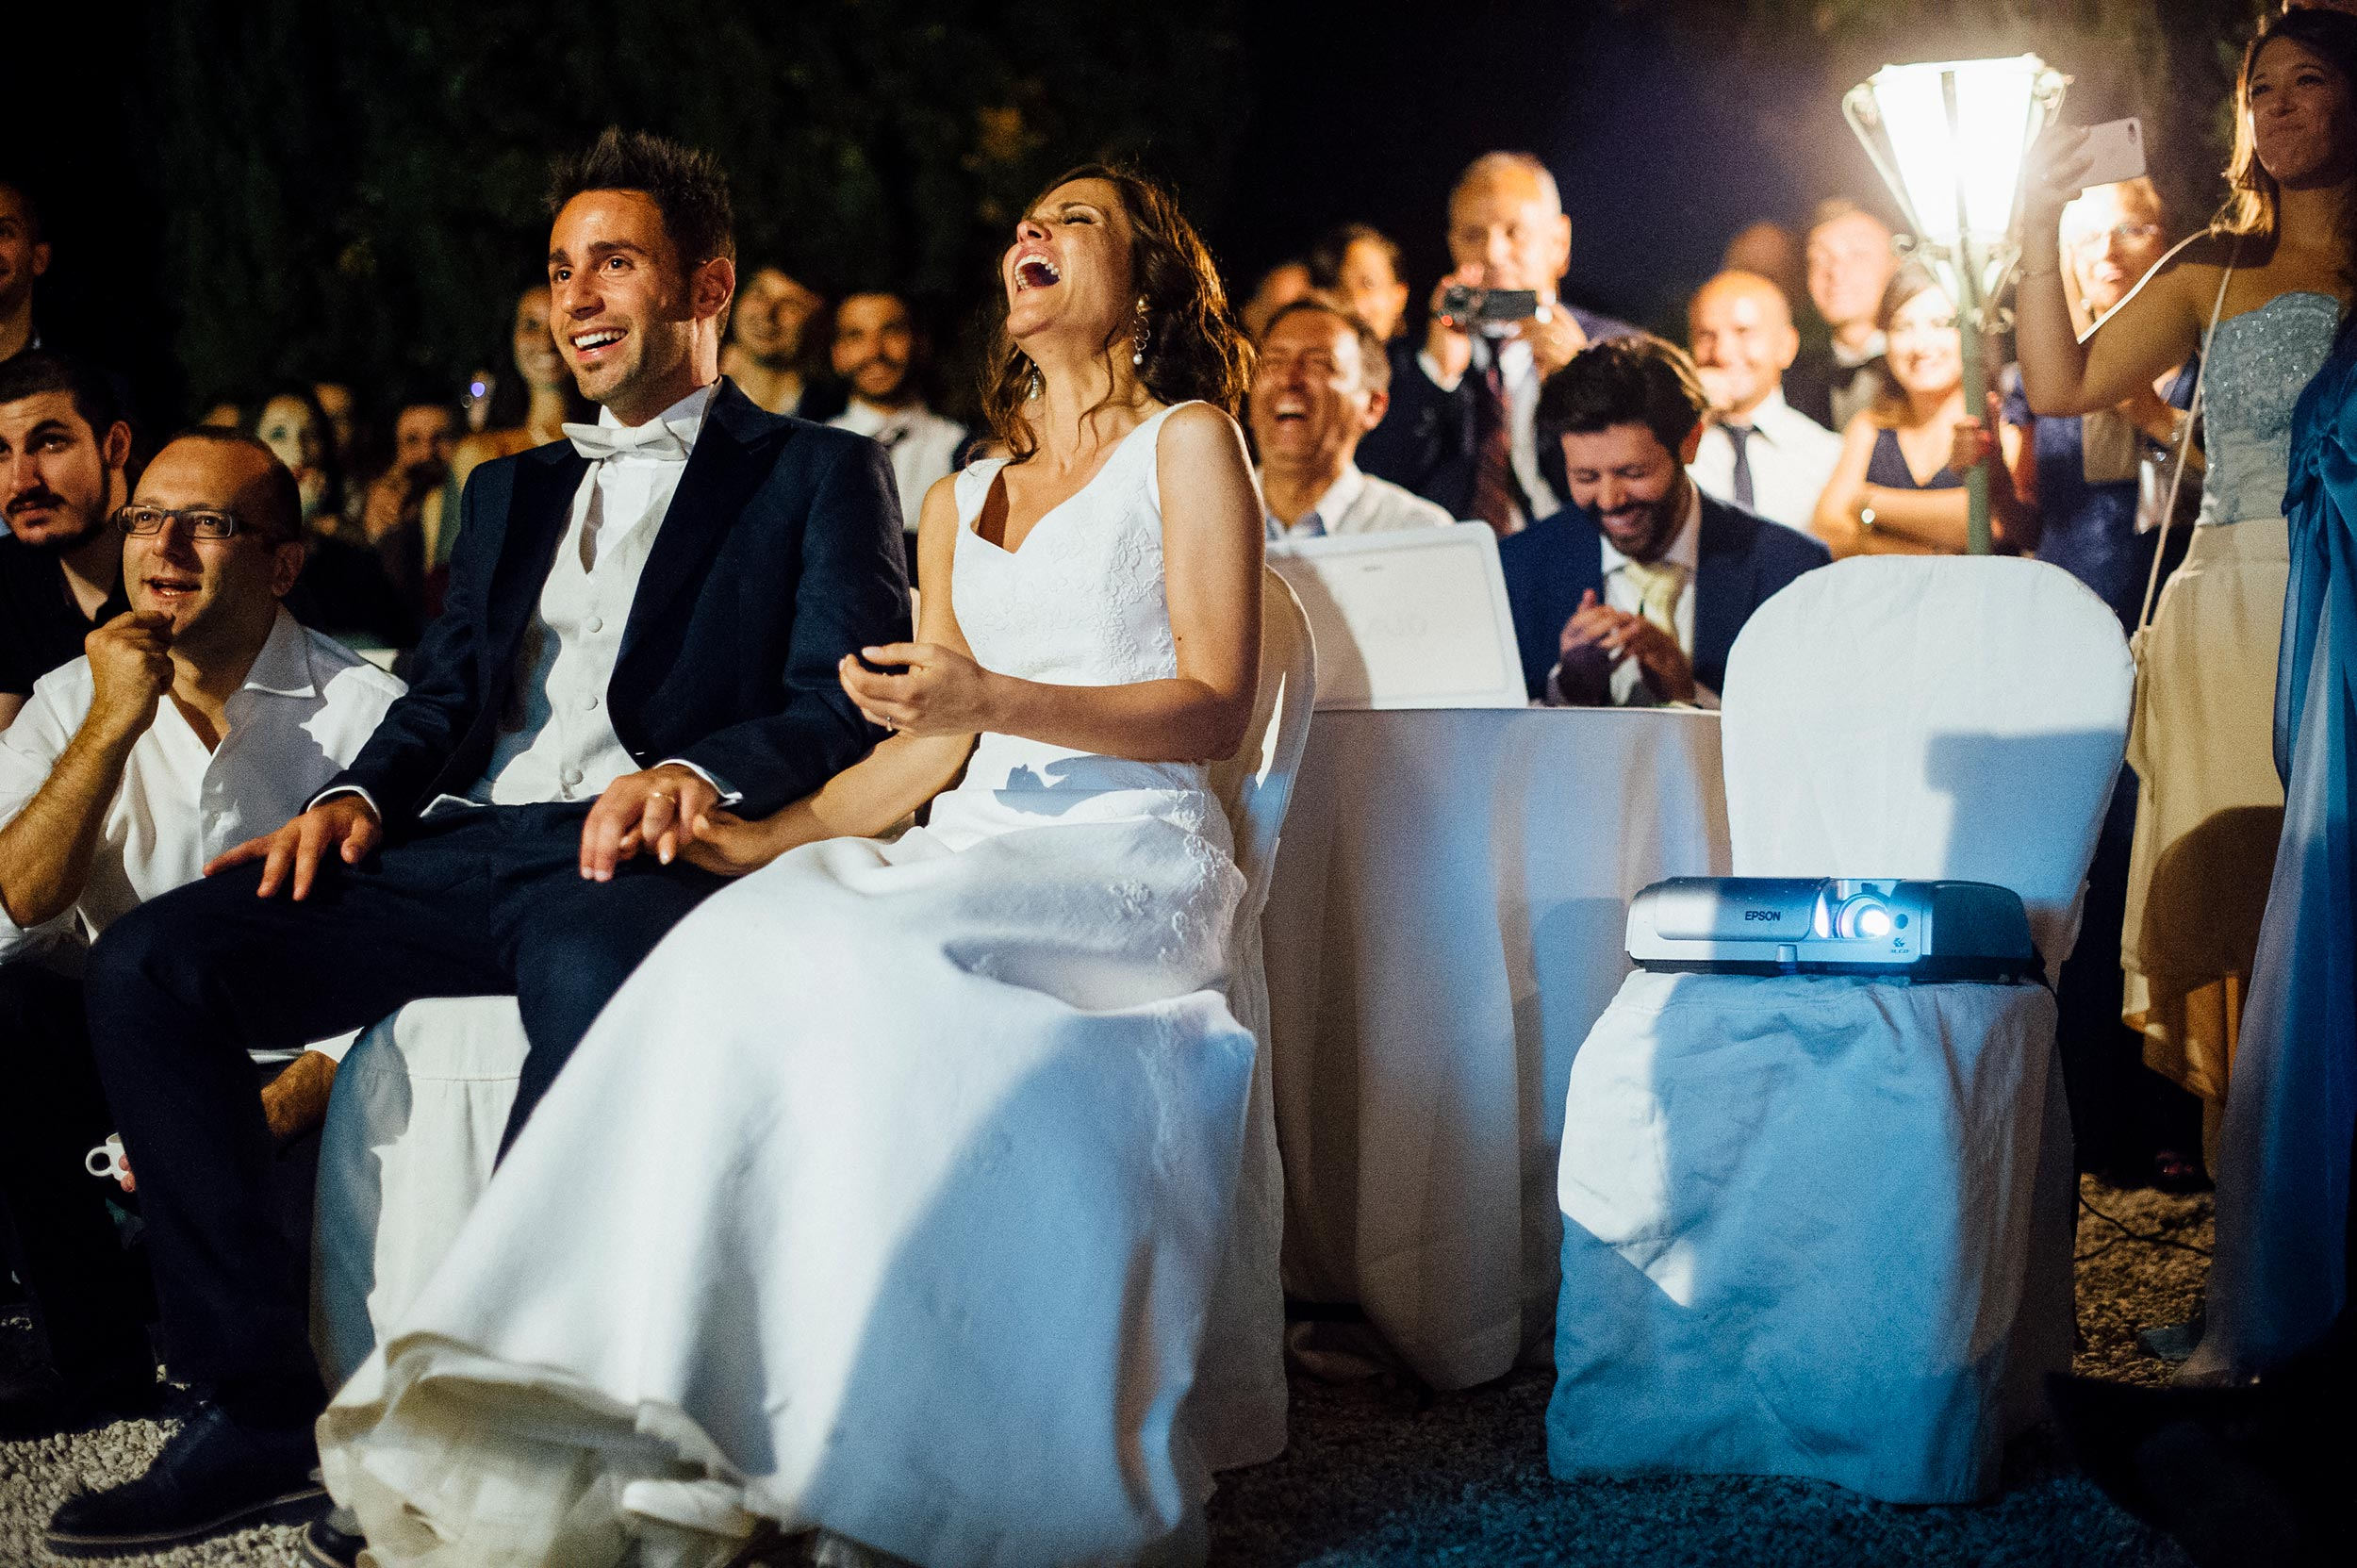 the-bride-and-groom-laughing-at-their-surprise-video.jpg